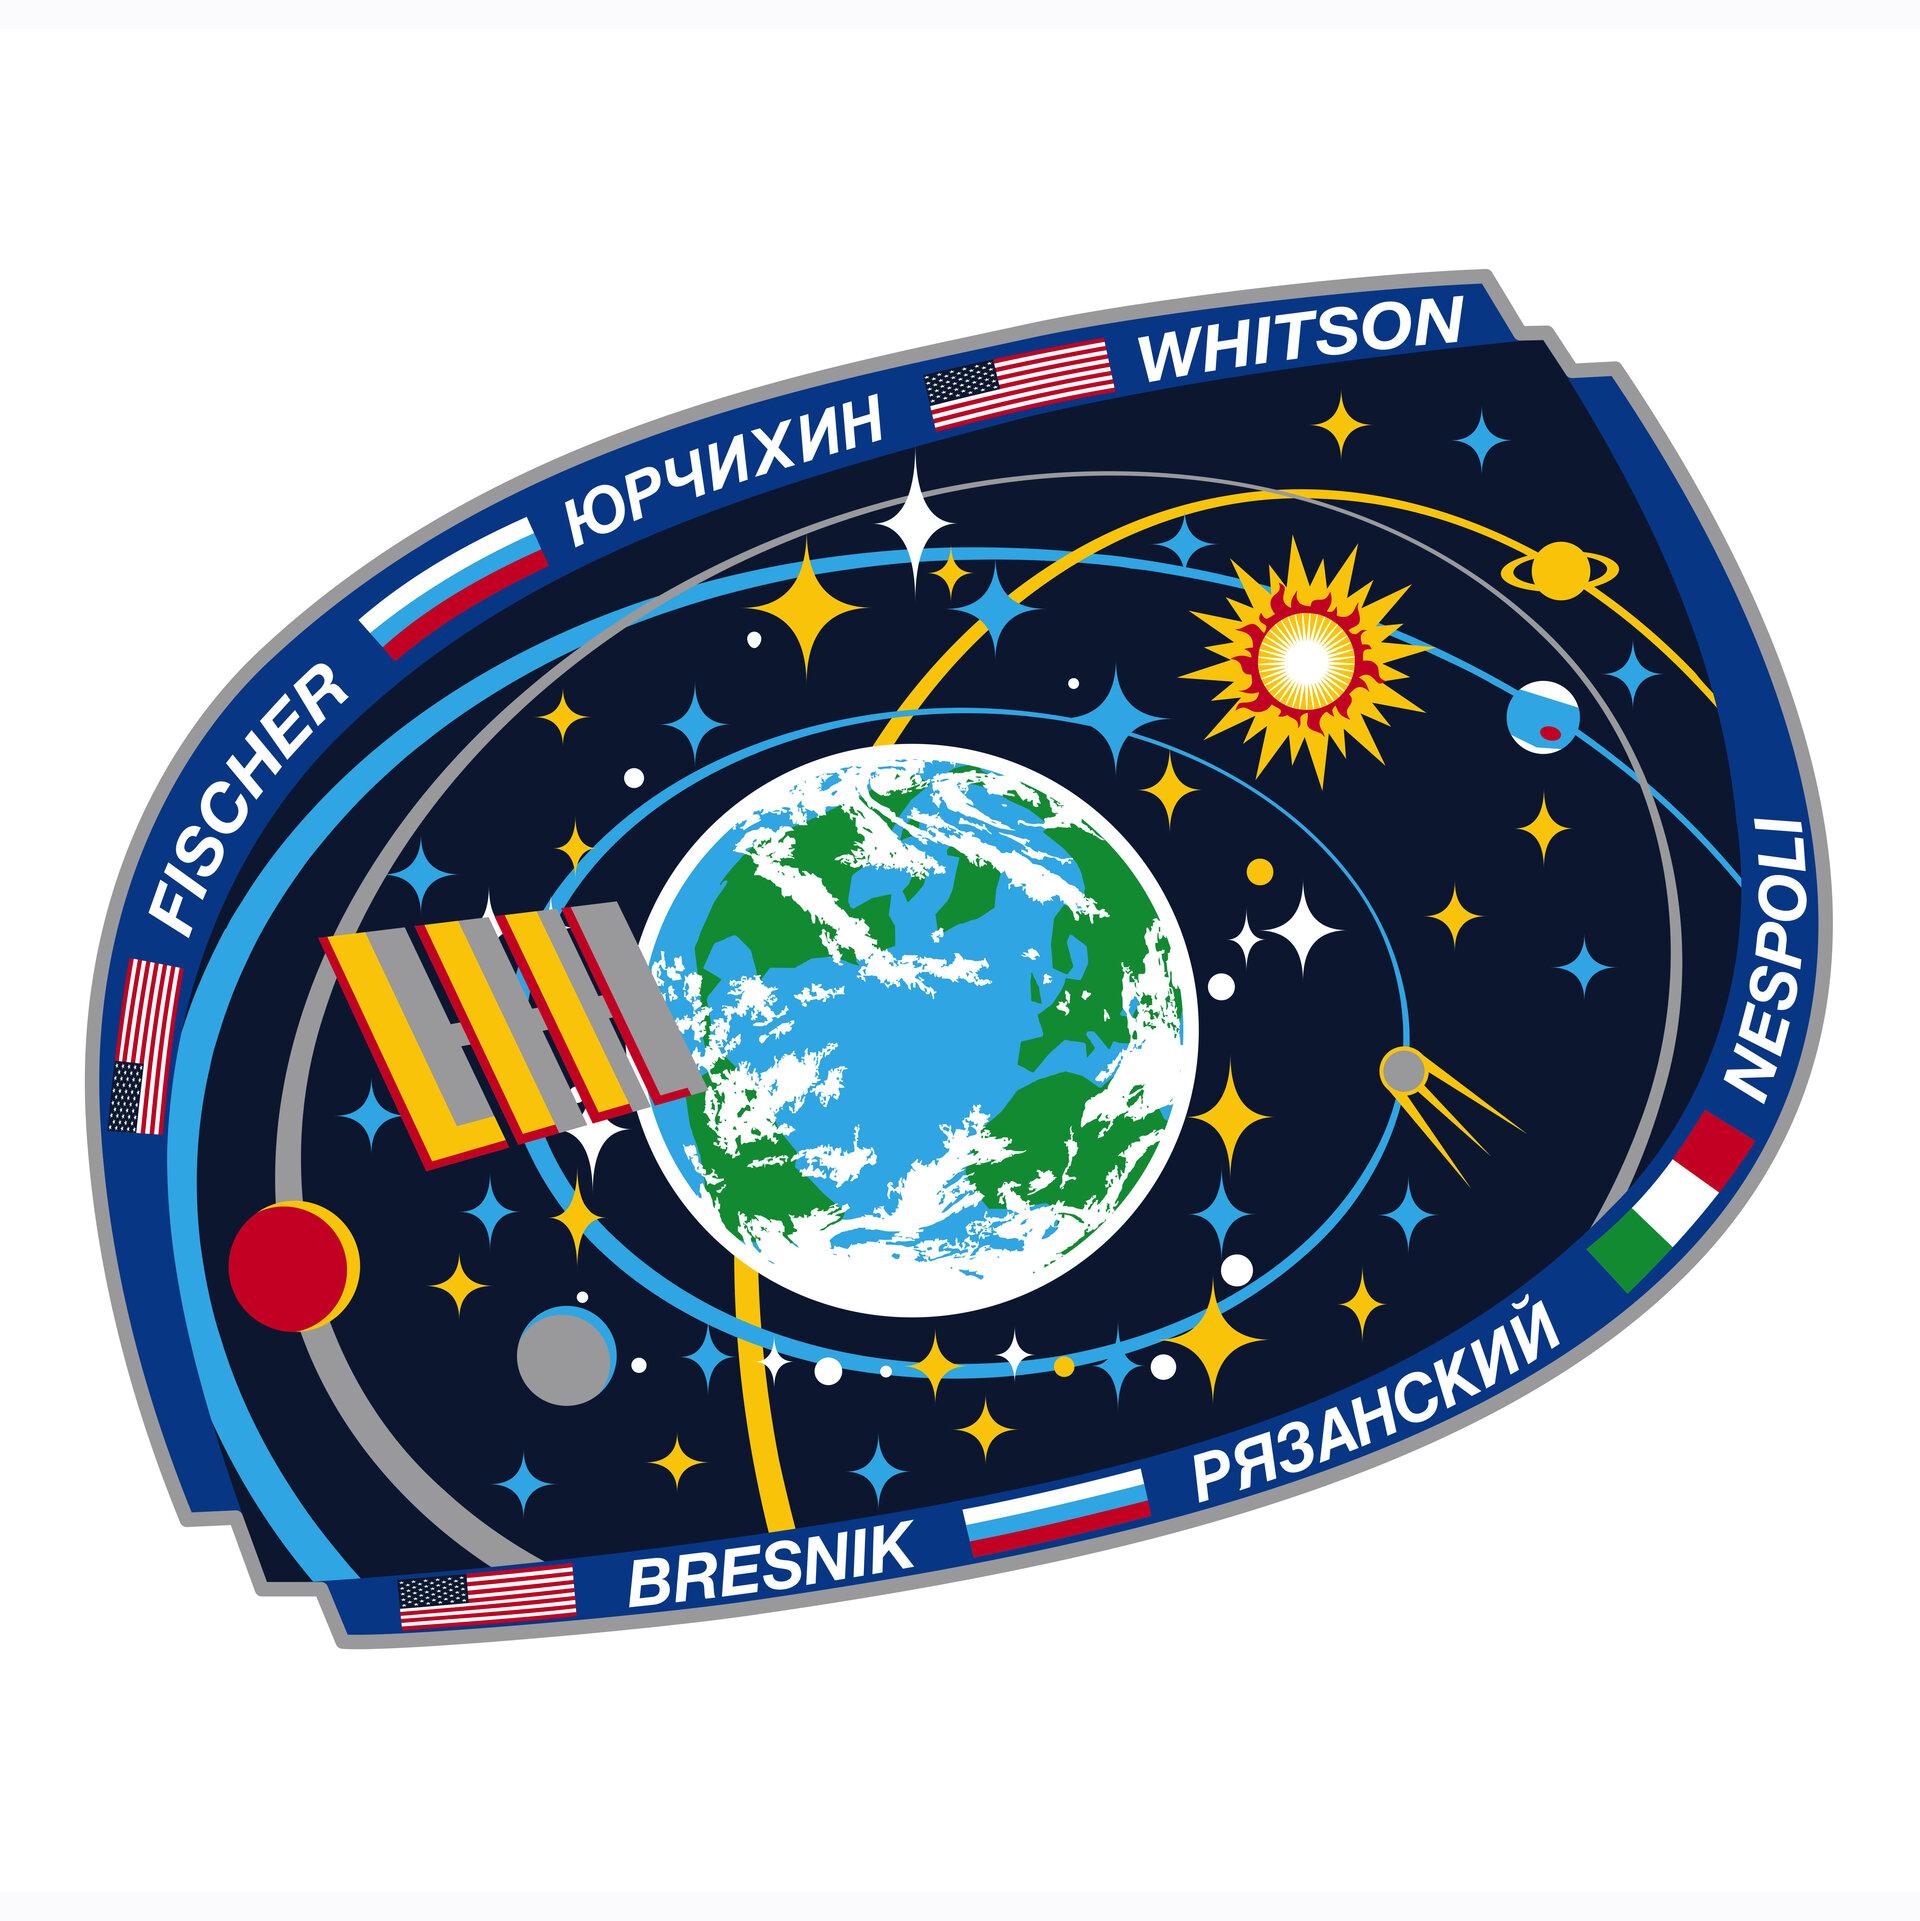 ISS Expedition 52 patch, 2017